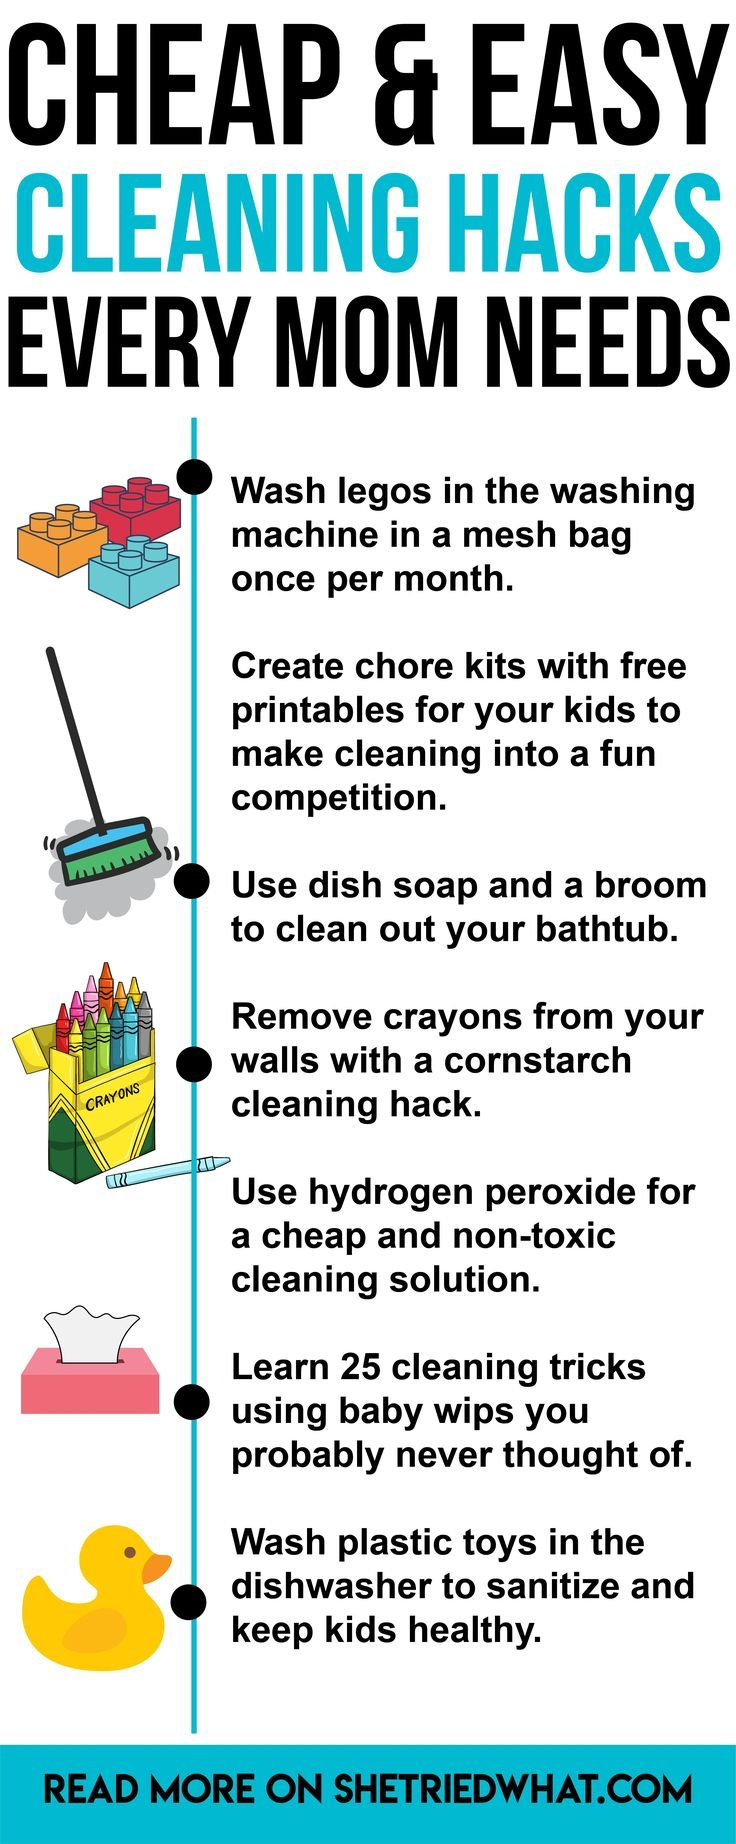 SO SMART! Clever mom cleaning hacks that are cheap and easy...exactly what ya need as a busy mom! Love the idea to put the kids plastic toys in the dishwasher - can't believe I never thought of that! Major mom life hack! #momlife #cleaningtips